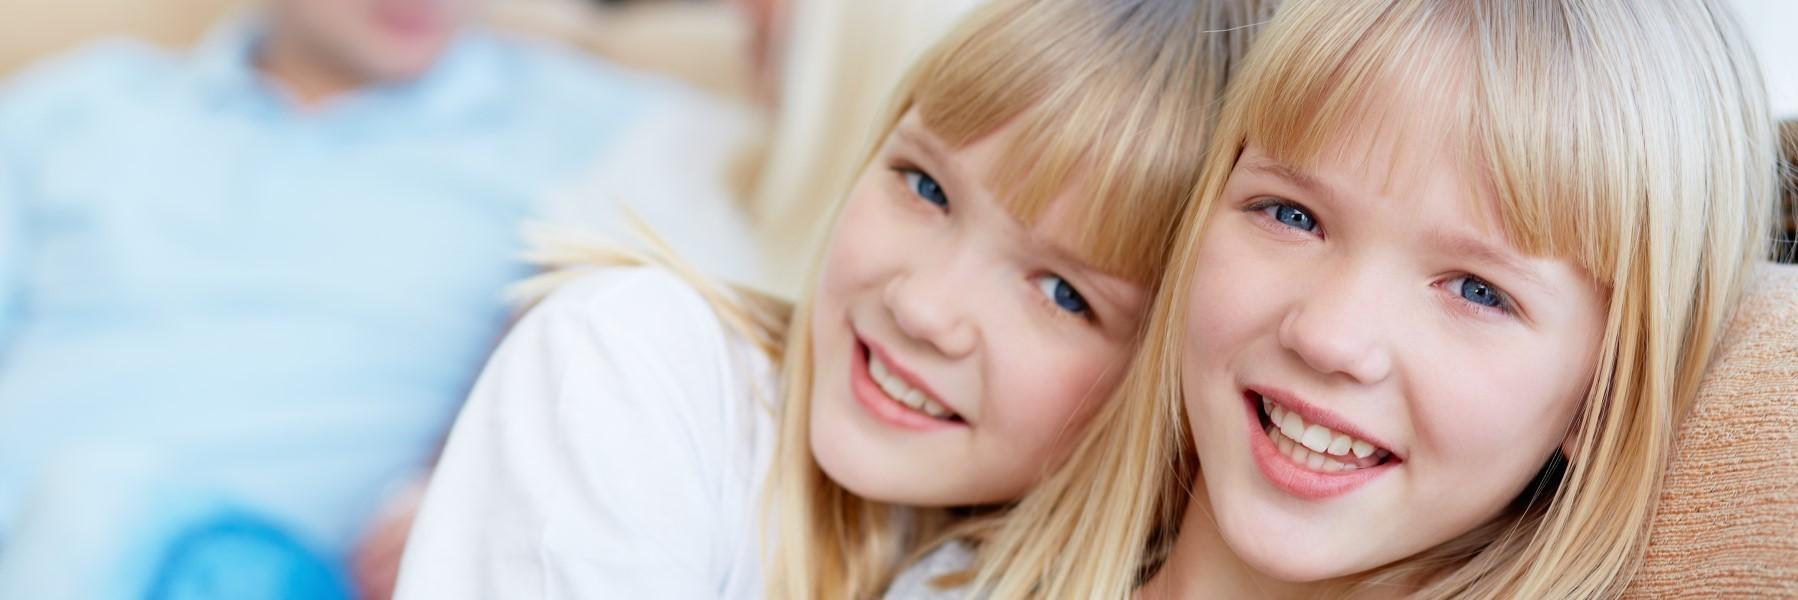 Two young girls smiling l Orthodontics Decatur IL